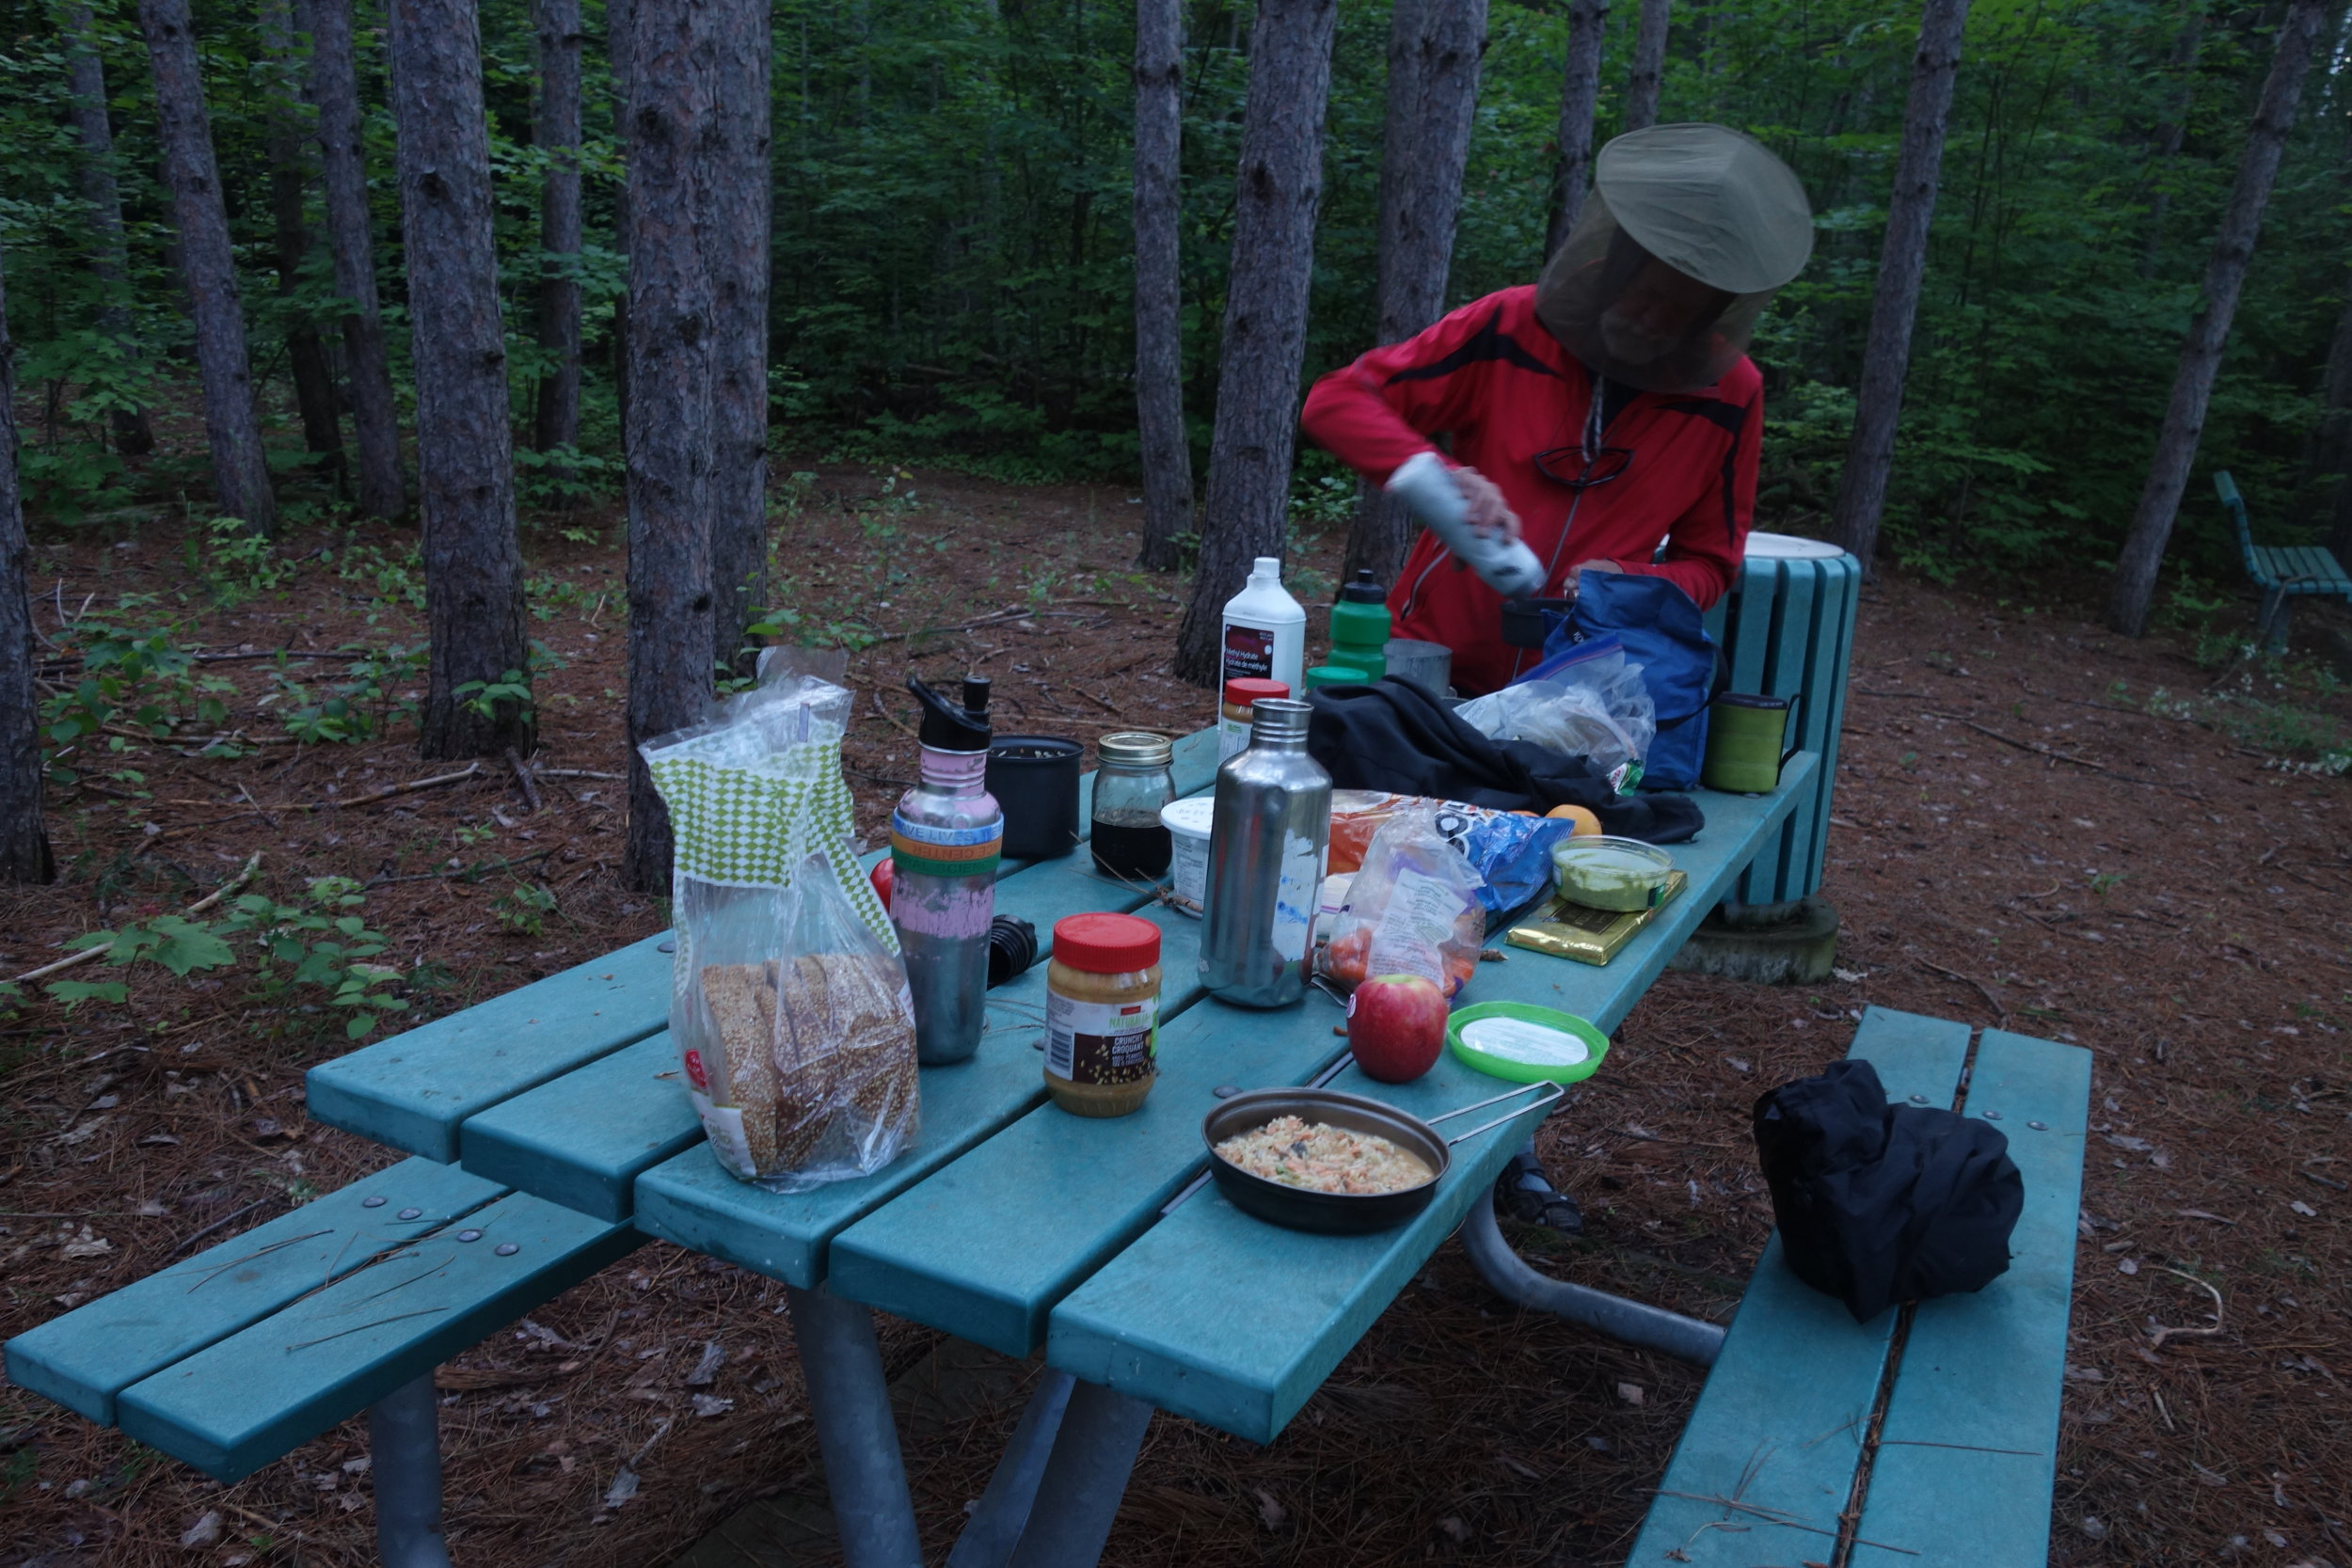 My first night camping with company, it was a fun reminder of the advantages of traveling in a group.